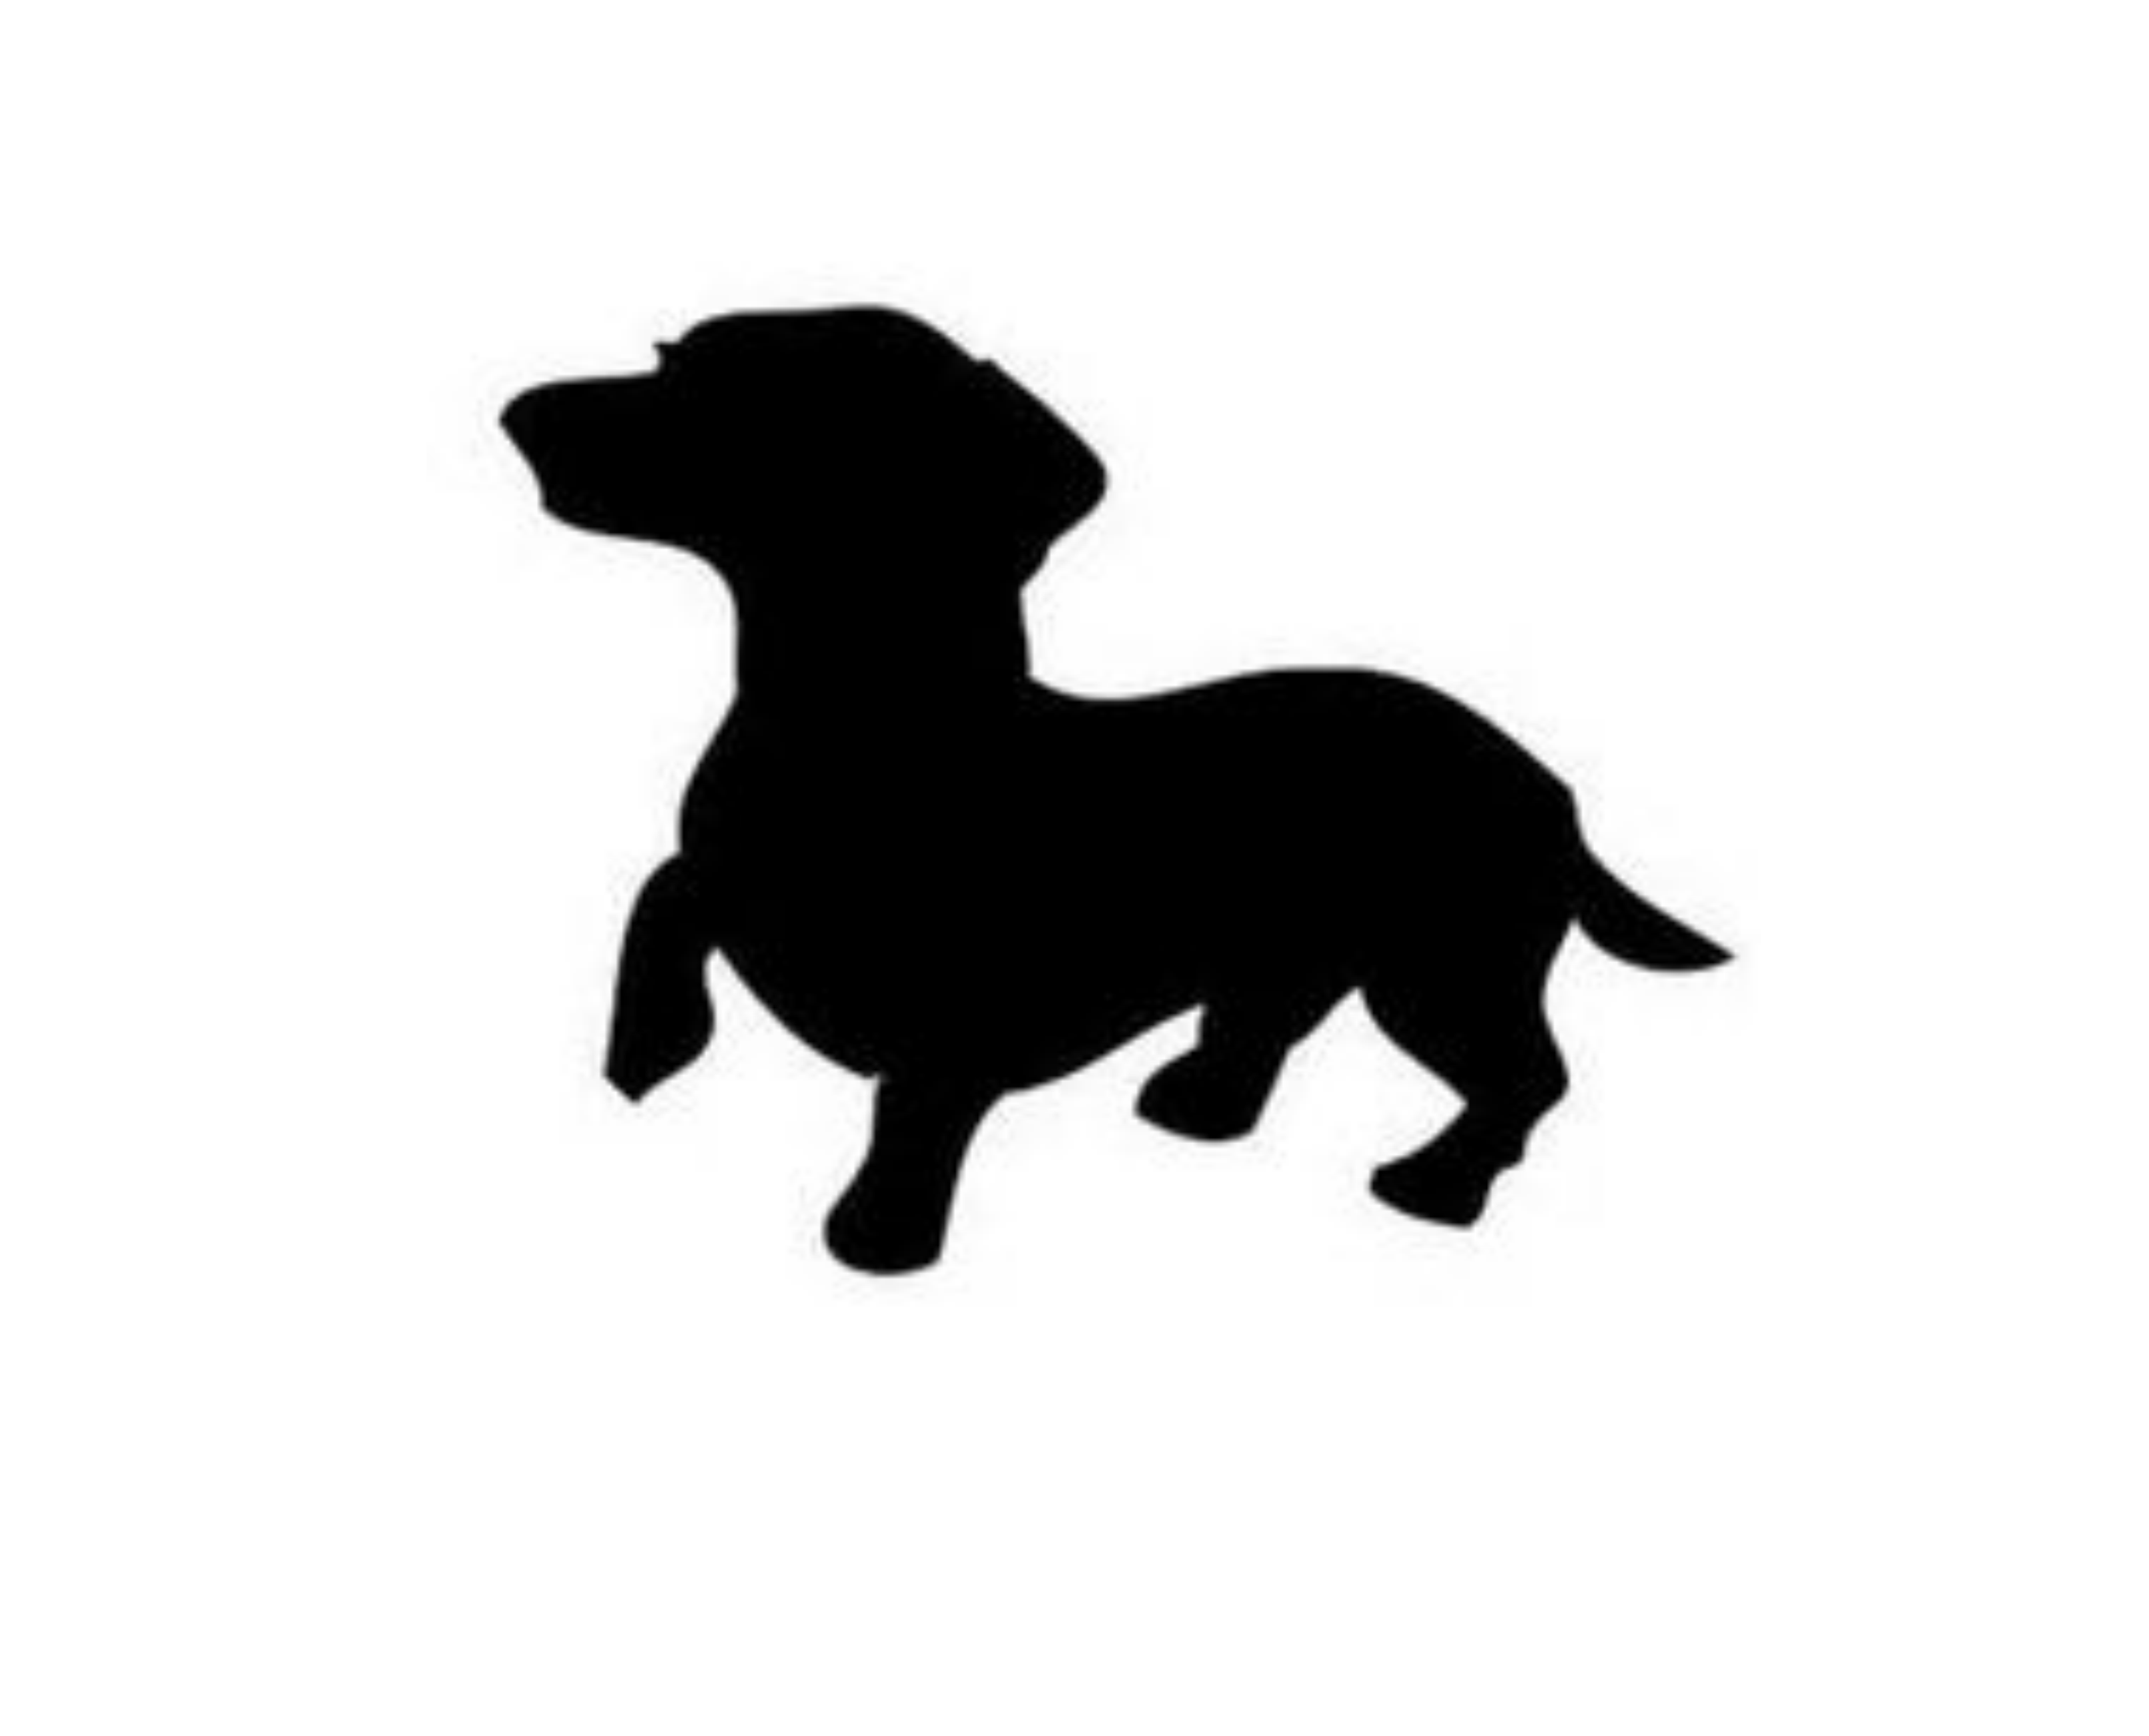 medium resolution of dachshund silhouette clip art love your pet day silhouette clip art animals images